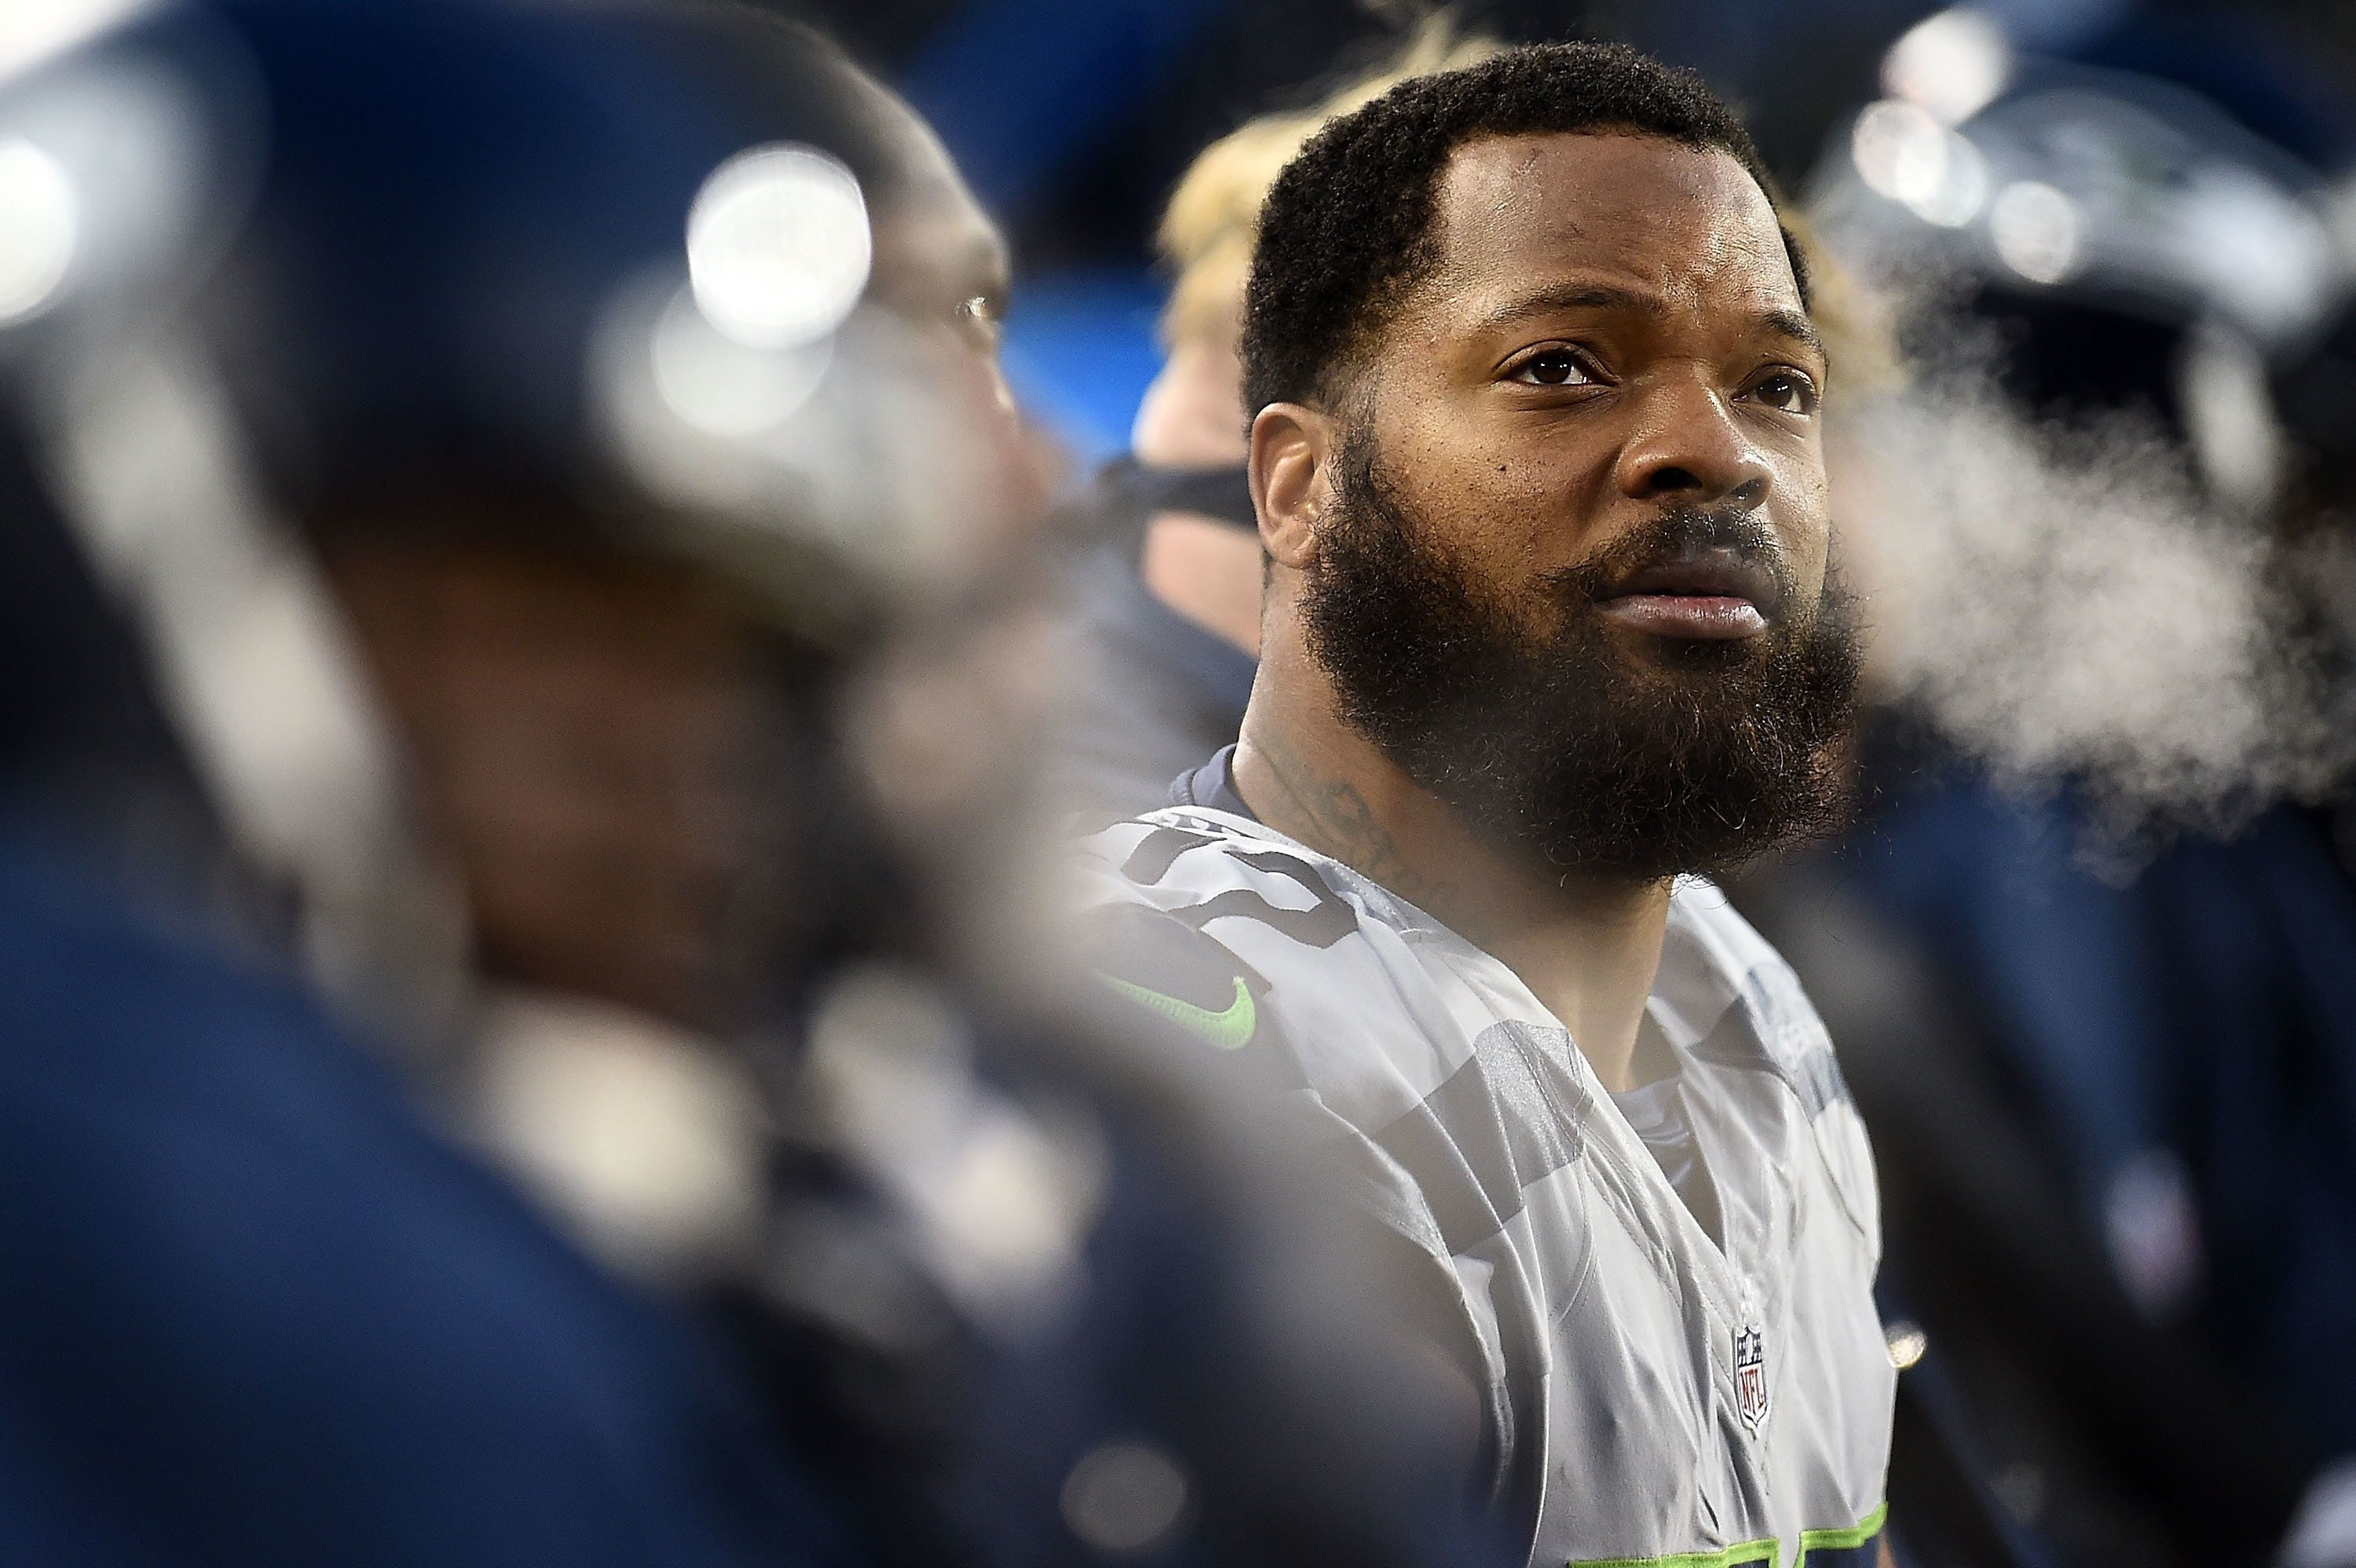 Michael Bennett is adefensive endfor the Seattle Seahawks.